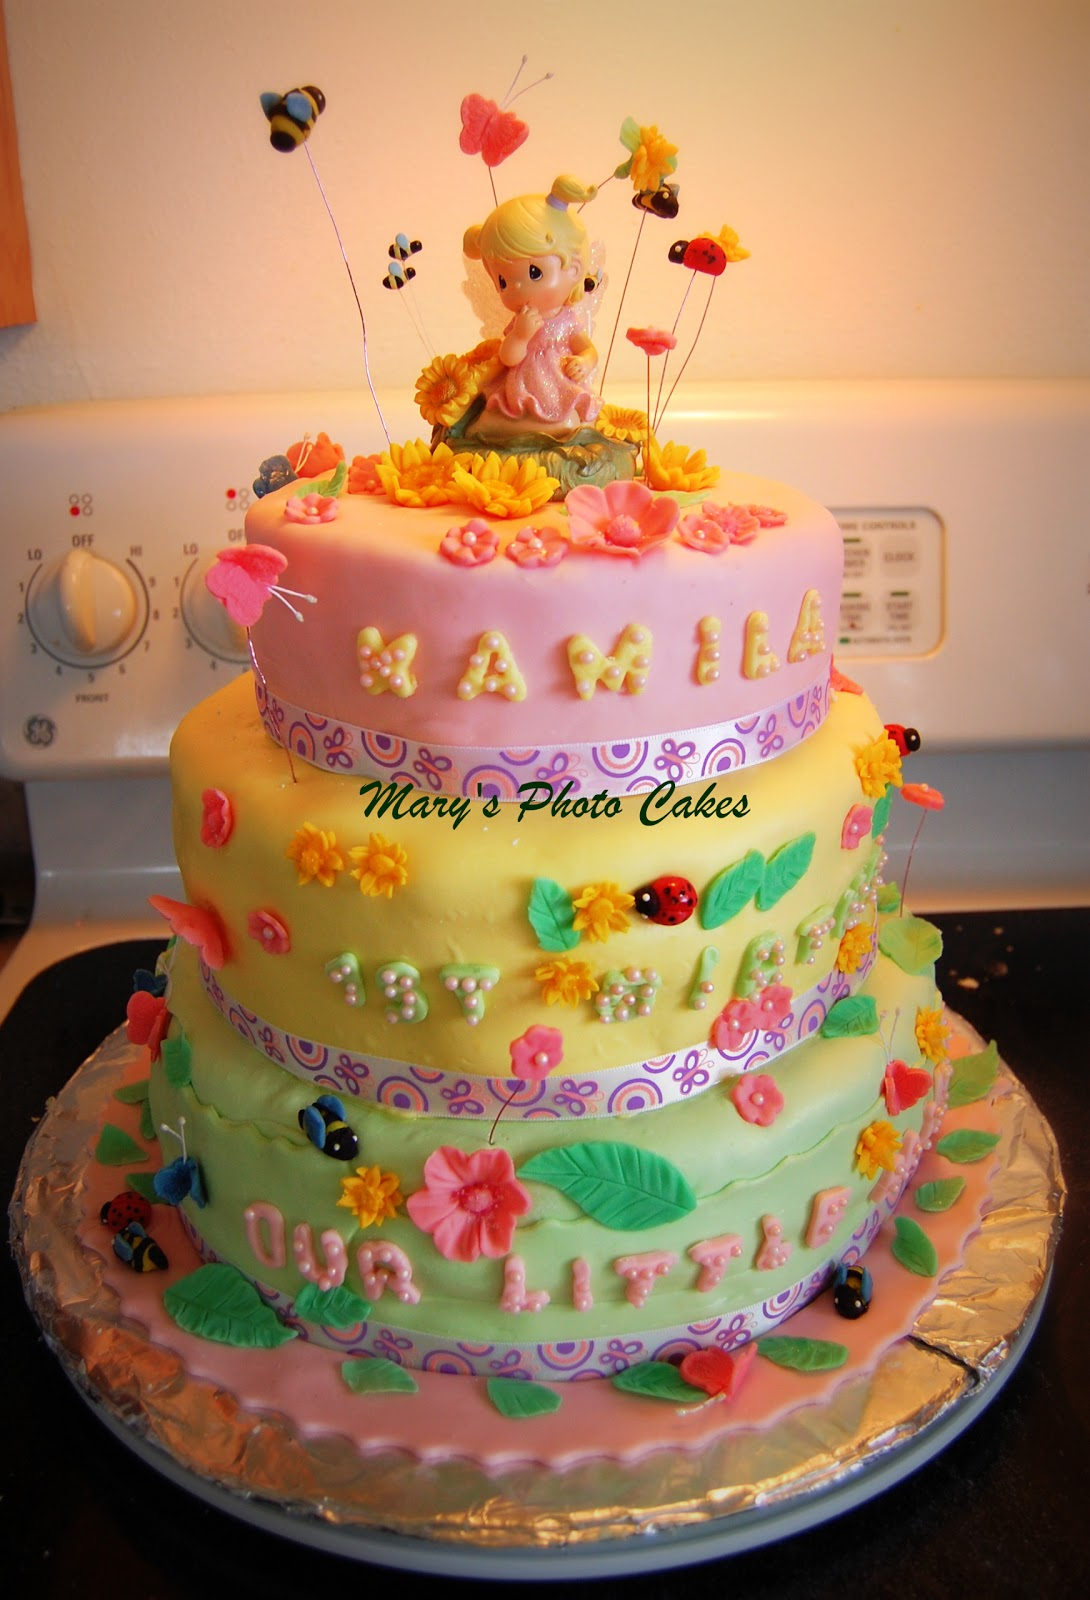 Birthday Cake Images 1 Year Old : Mary s Photo Cakes: Precious Moments Cake for a 1 Year Old ...